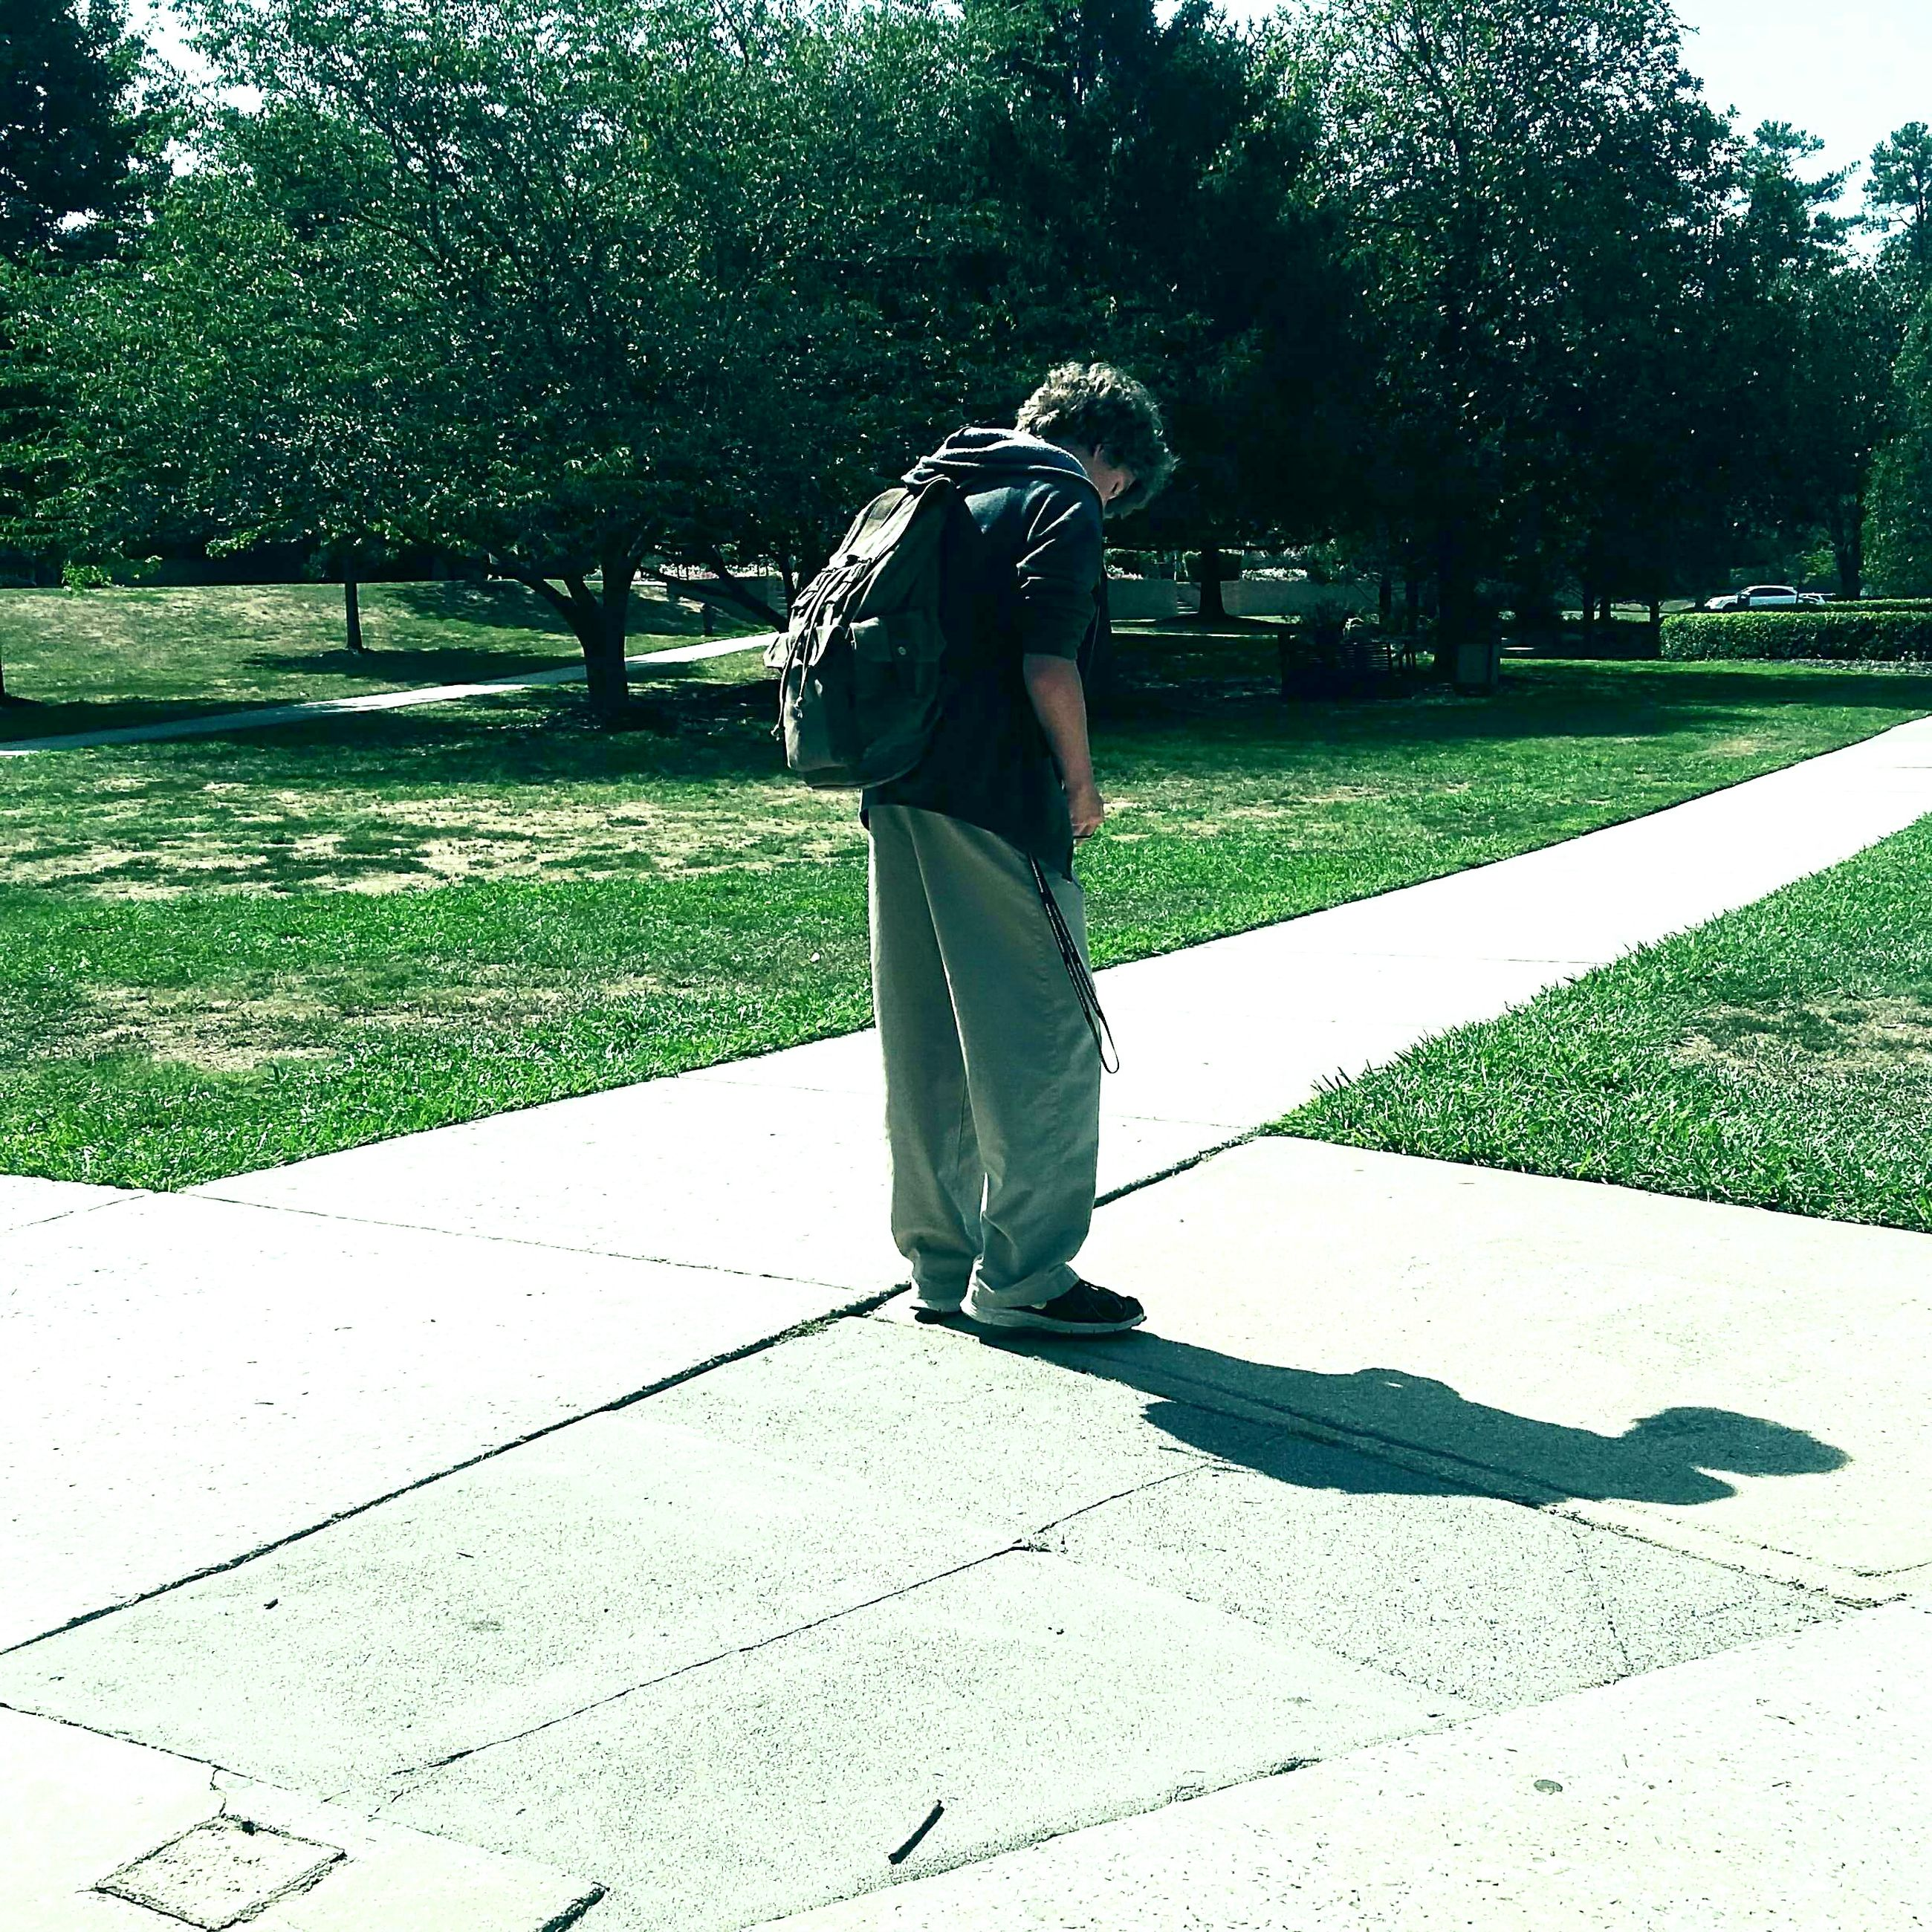 full length, one person, leisure activity, outdoors, real people, day, grass, tree, only men, adults only, one man only, adult, nature, people, golfer